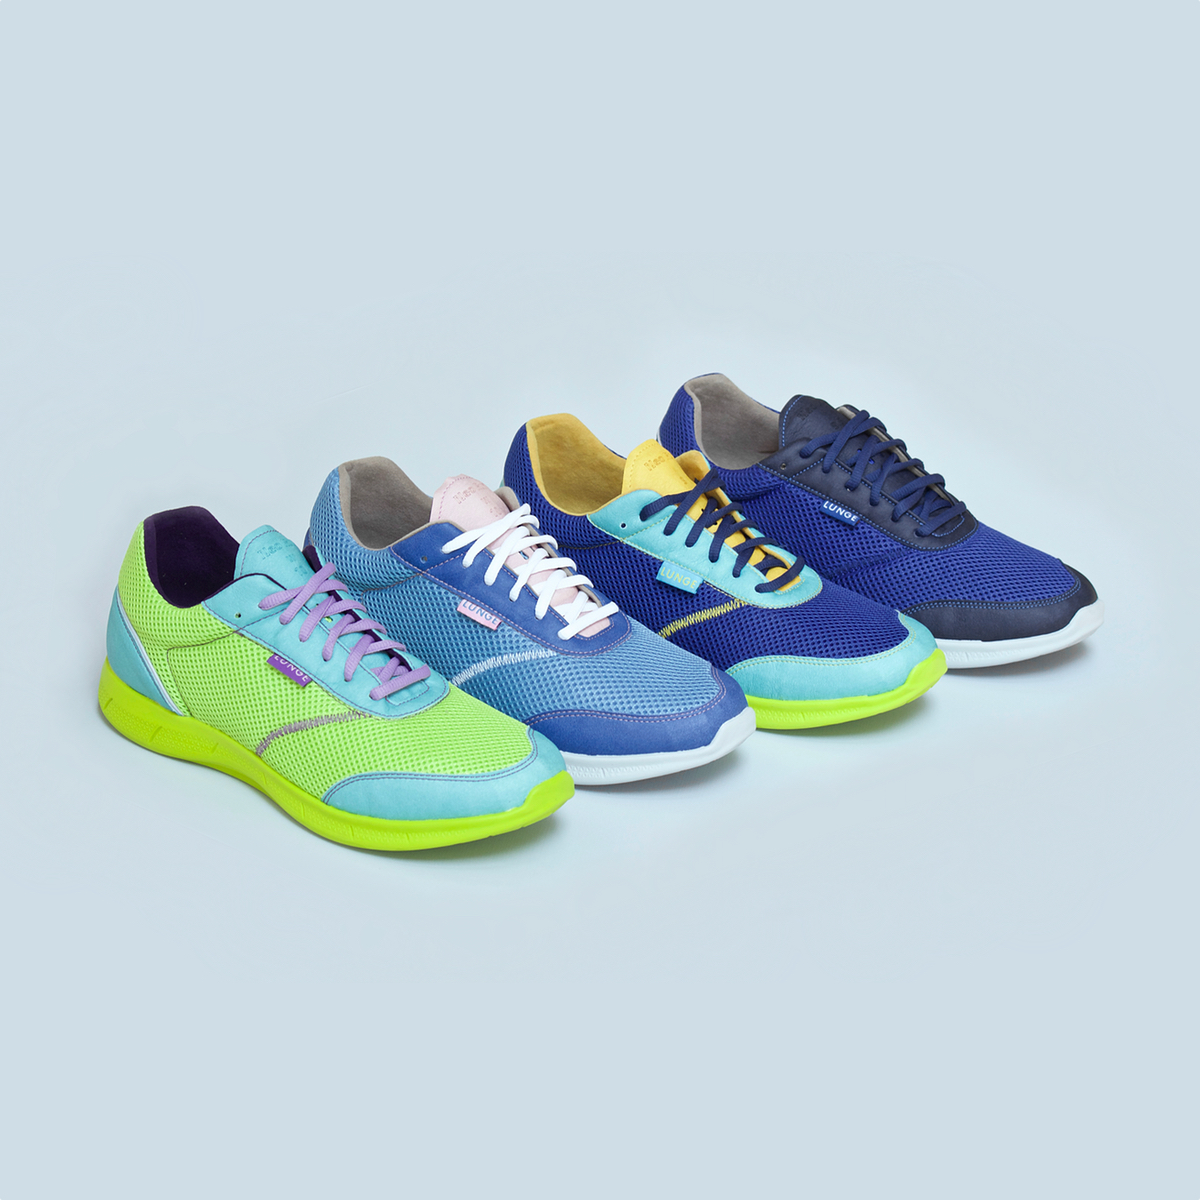 Neo Run in new colors